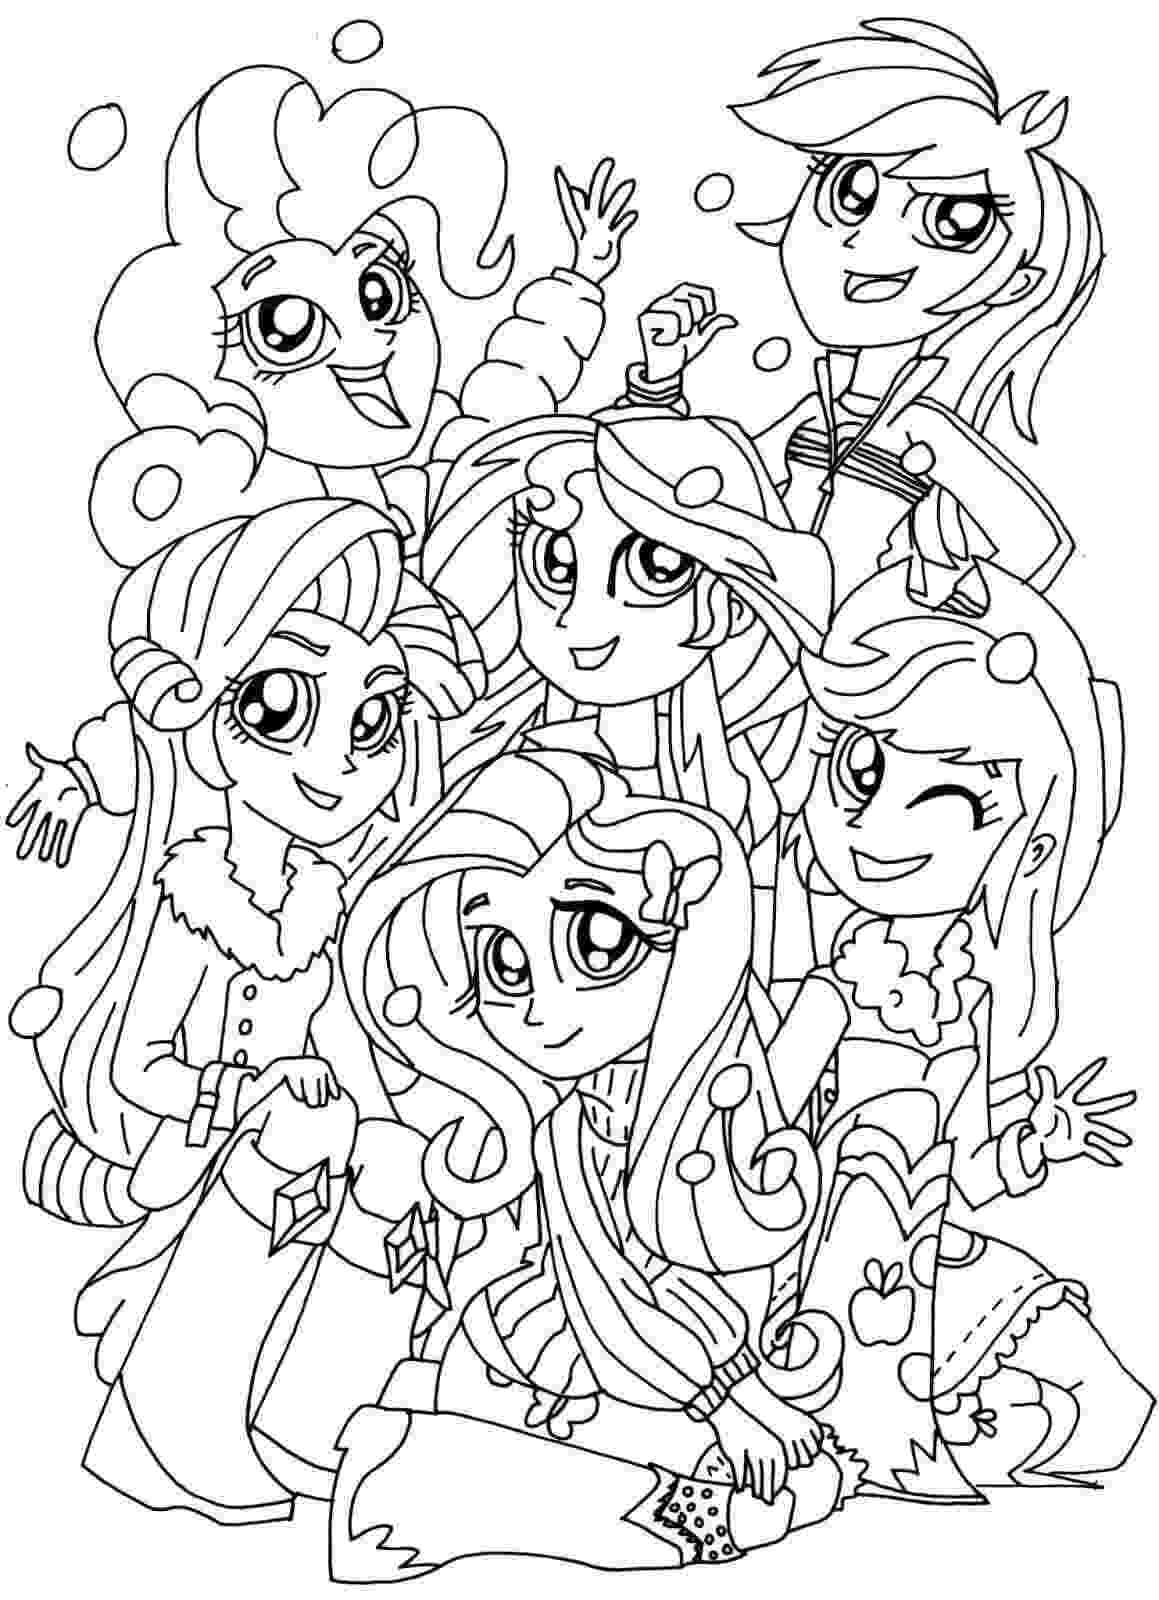 girl colering pages coloring pages for girls 4 coloring kids girl colering pages